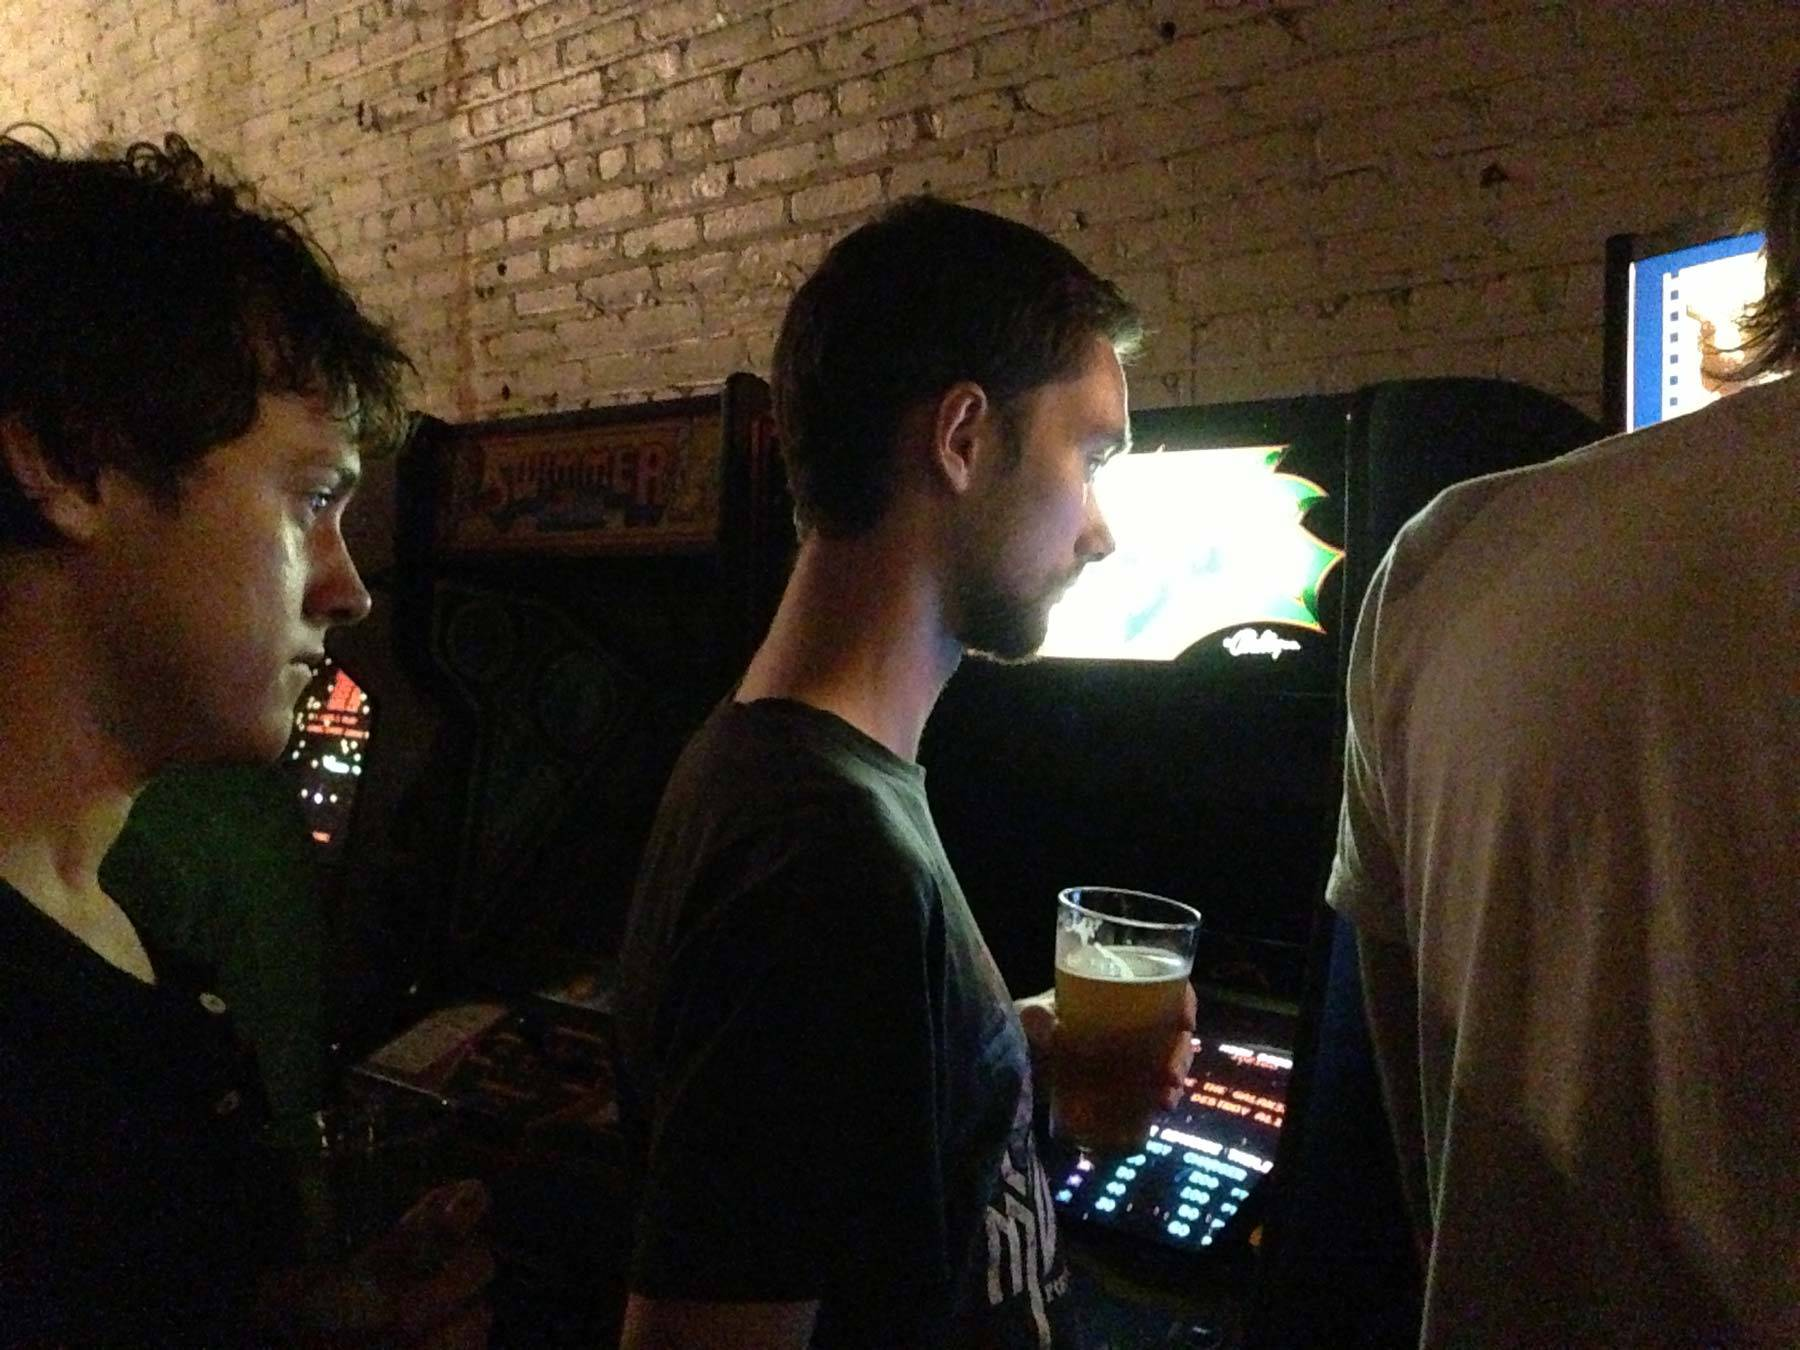 Richard and Jared watch Butcher play an arcade game